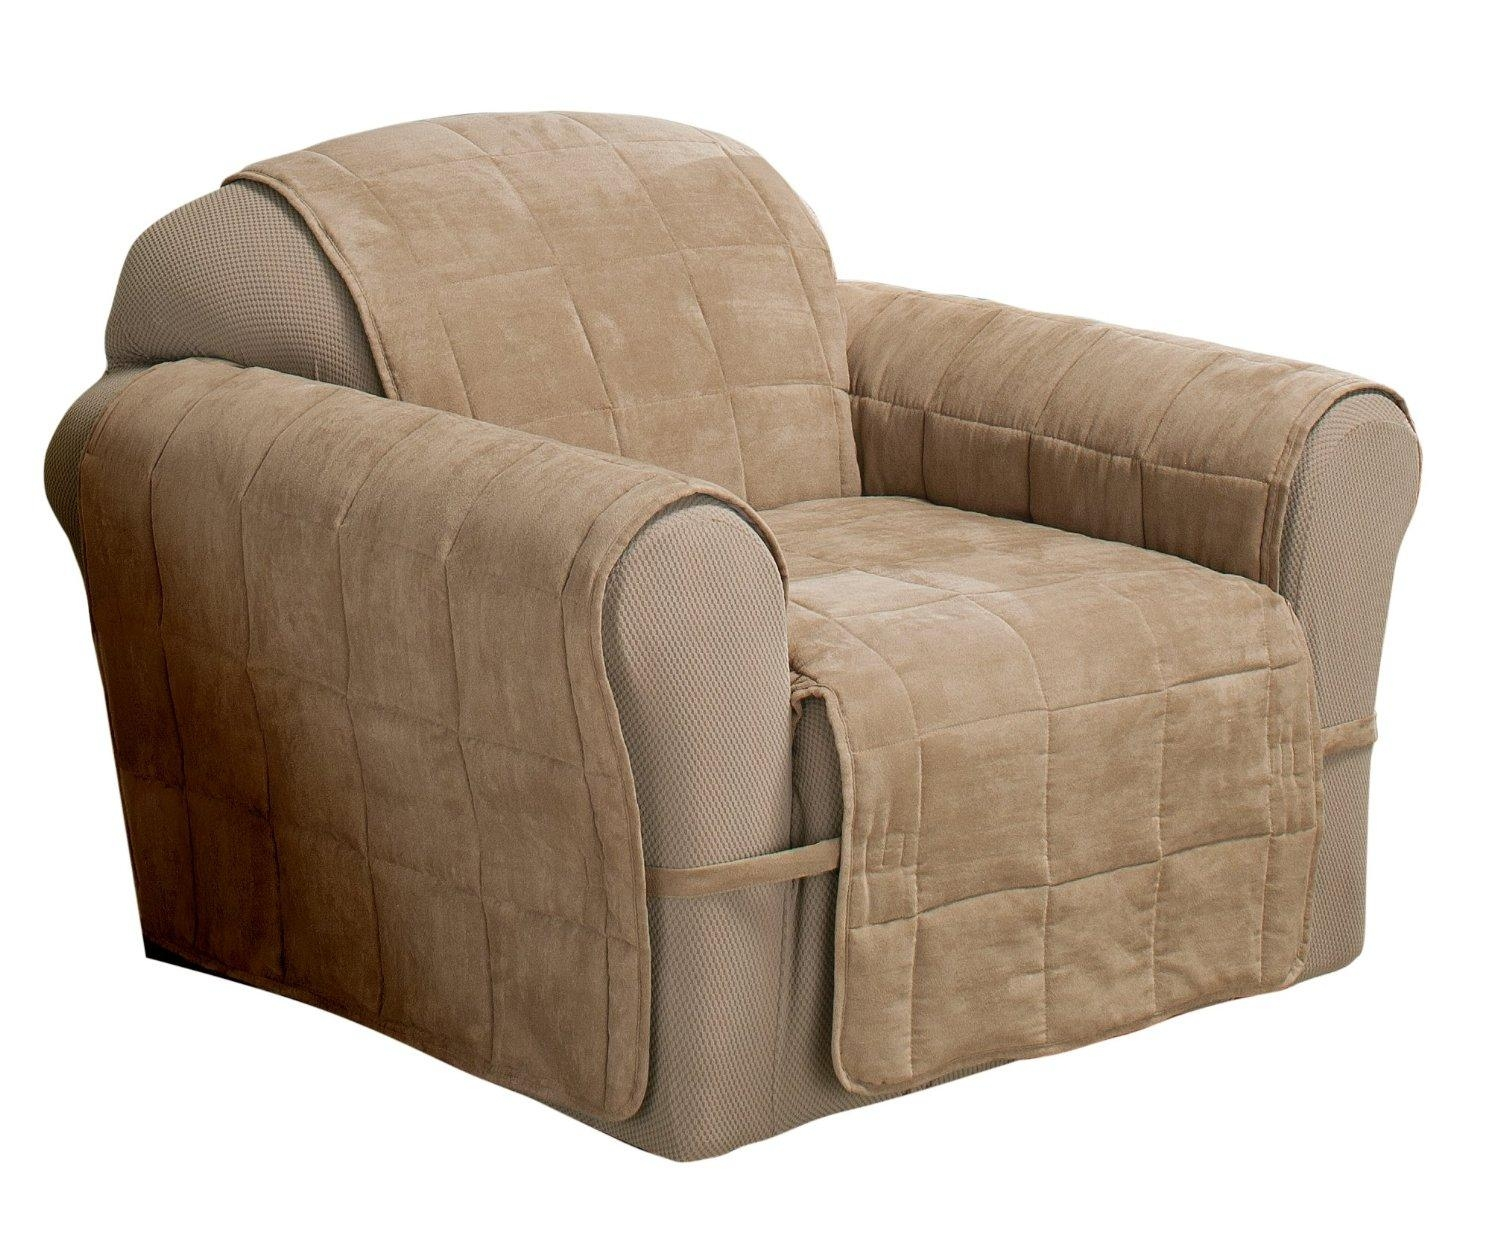 Sofas Center : J172 001 2 Faux Suede Pet Furniture Covers For Regarding Covers For Sofas And Chairs (Image 15 of 20)